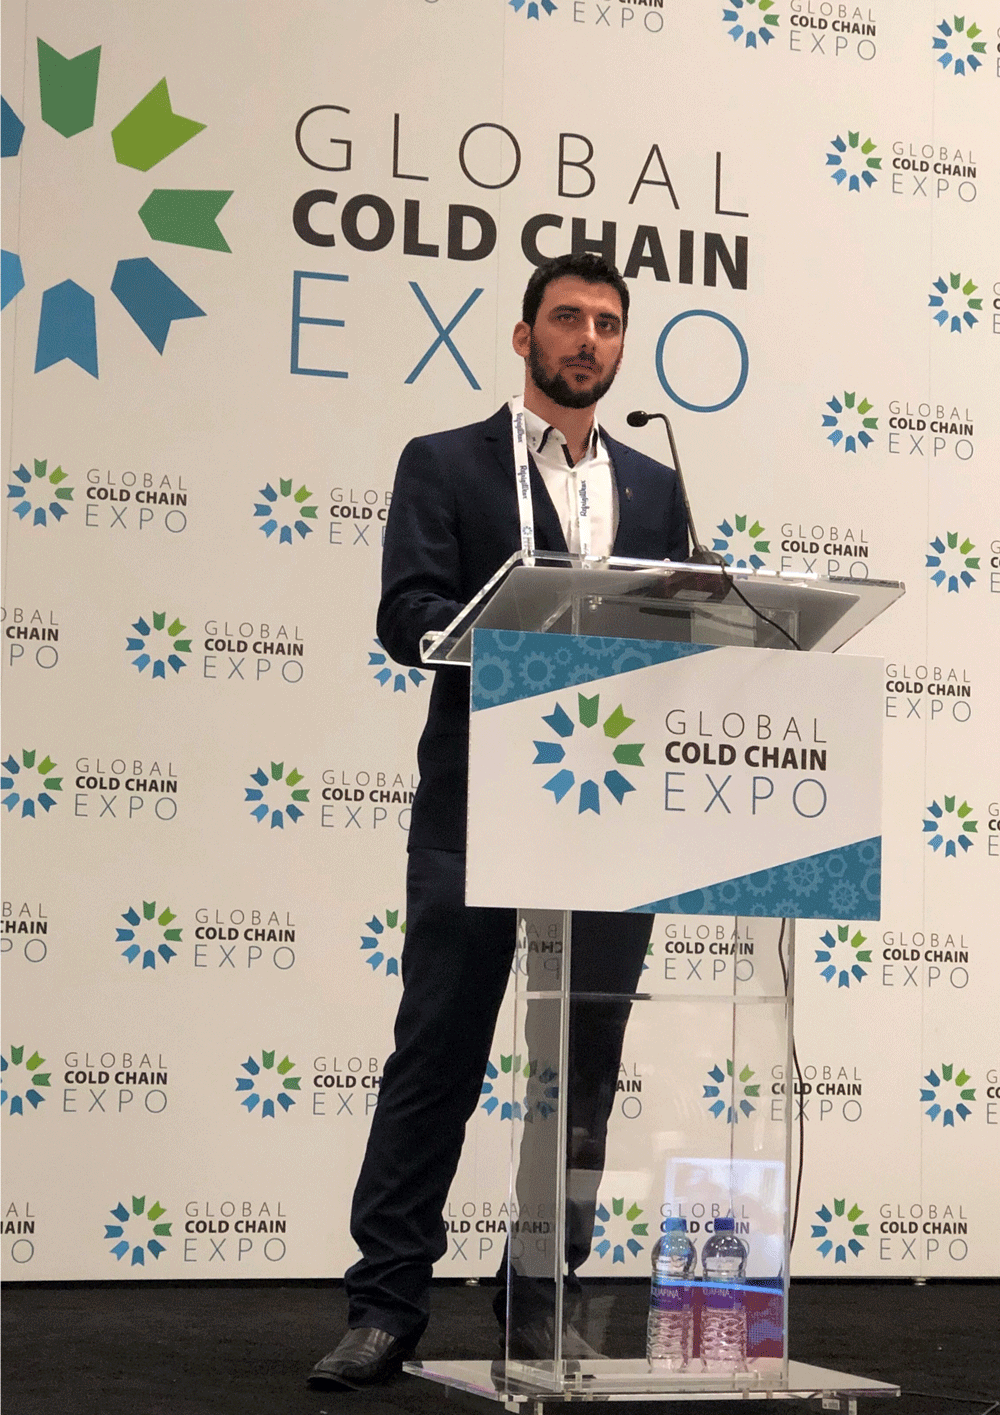 Anthony Crowhurst, the winner of the RWTA Frank Vale (2018) Award at the Global Cold Chain Expo in Chicago in 2018.